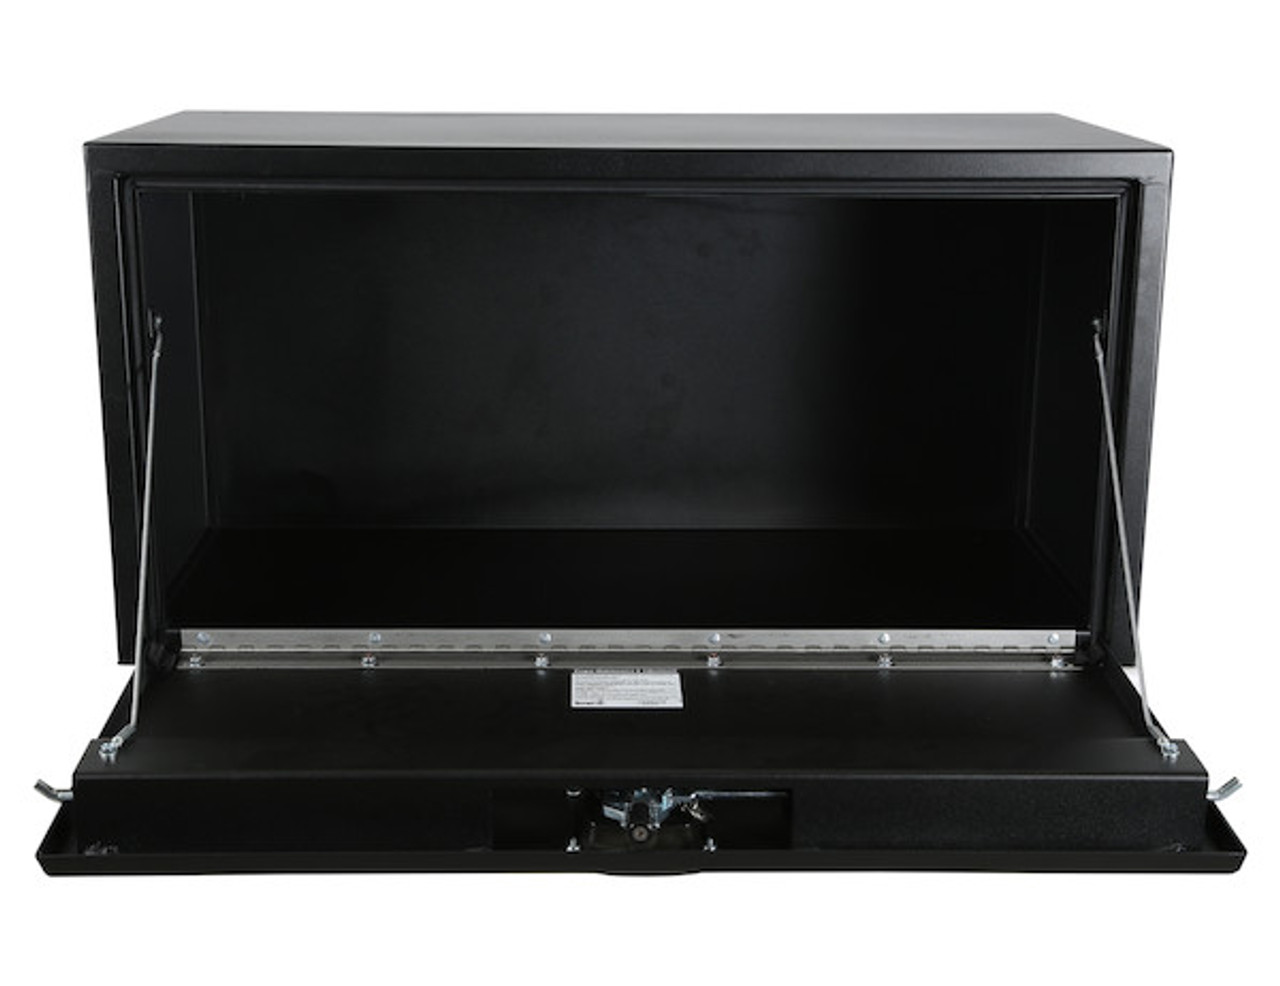 """1734503 BUYERS PRODUCTS TEXTURED MATTE BLACK STEEL UNDERBODY TRUCK TOOLBOX WITH 3-POINT LATCH 24""""Hx24""""Dx30""""W  Picture # 5"""